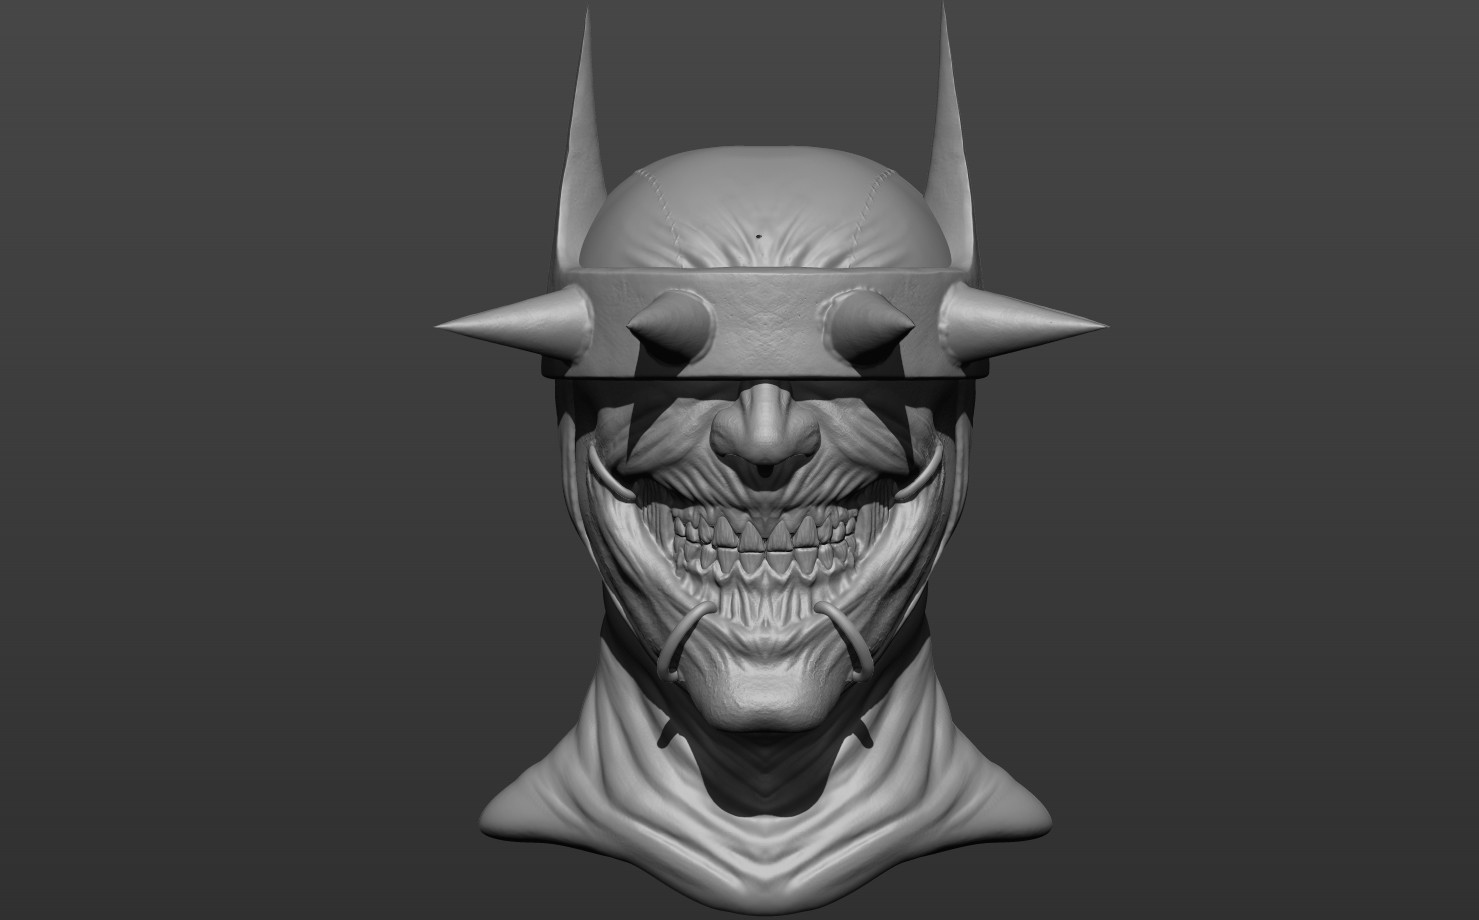 remco-liqui-lung-zbrush-document-1.jpg?1